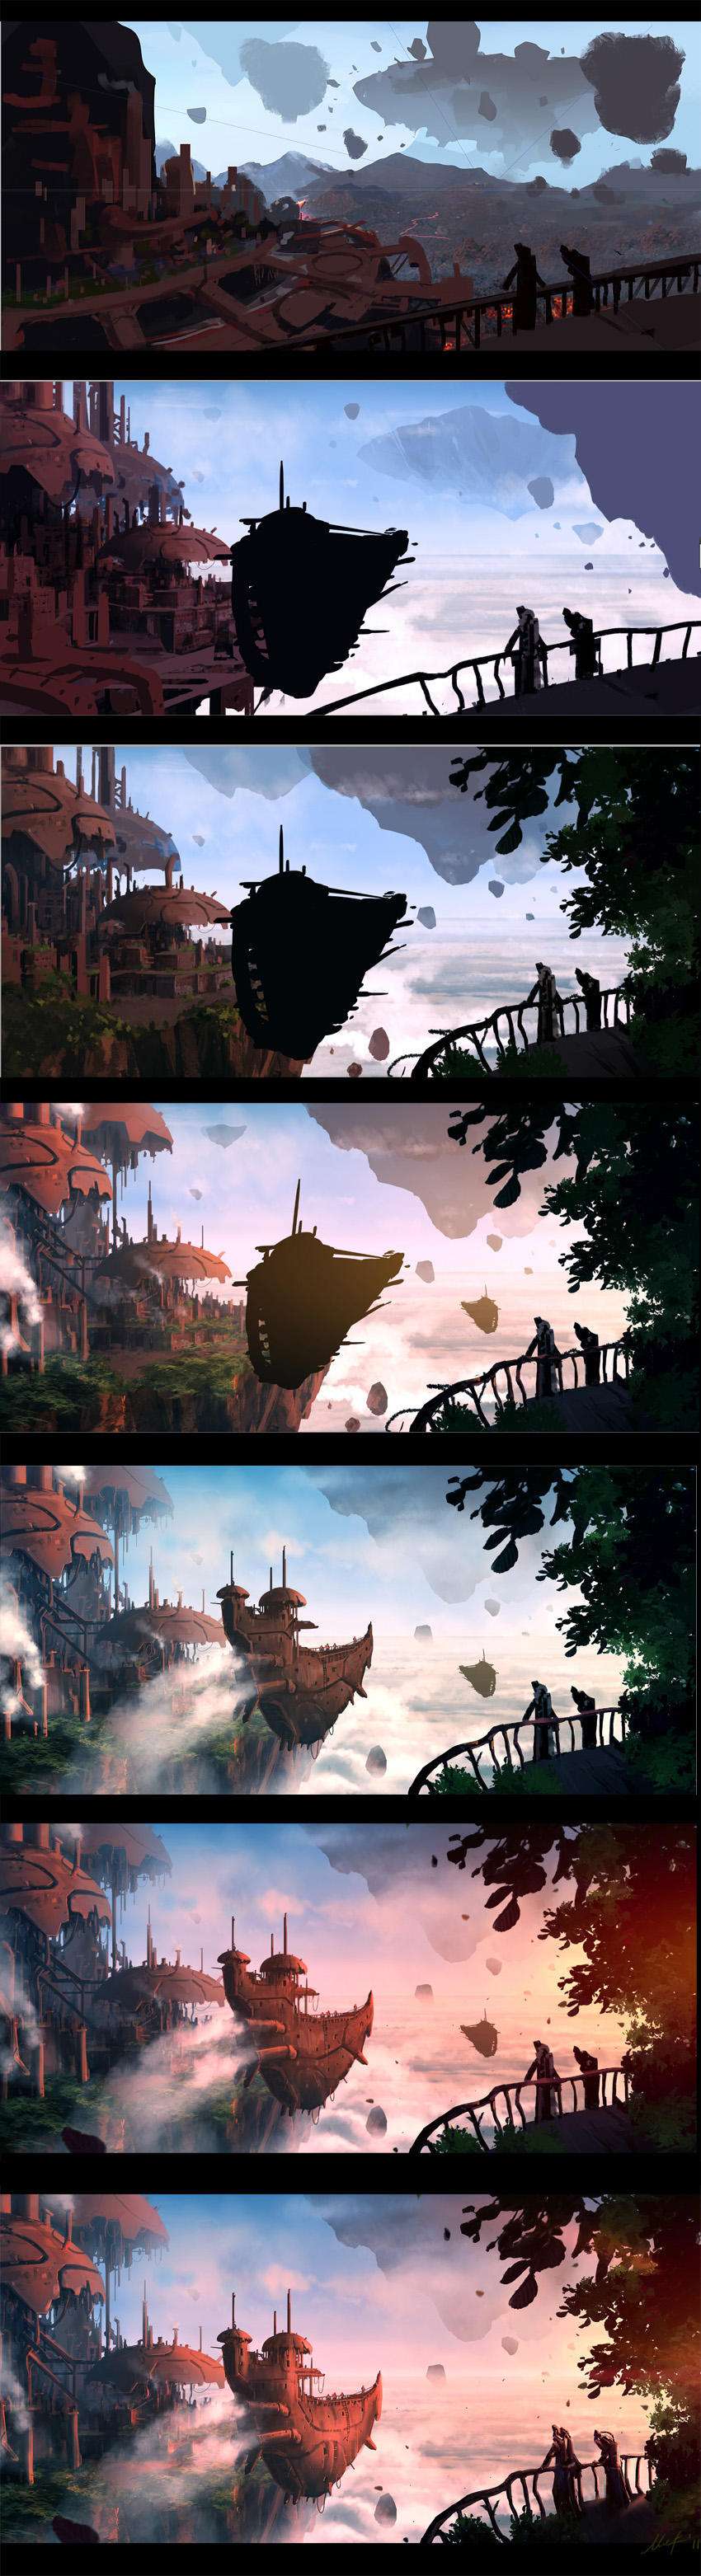 Making of 'High in the sky' by ArtistMEF